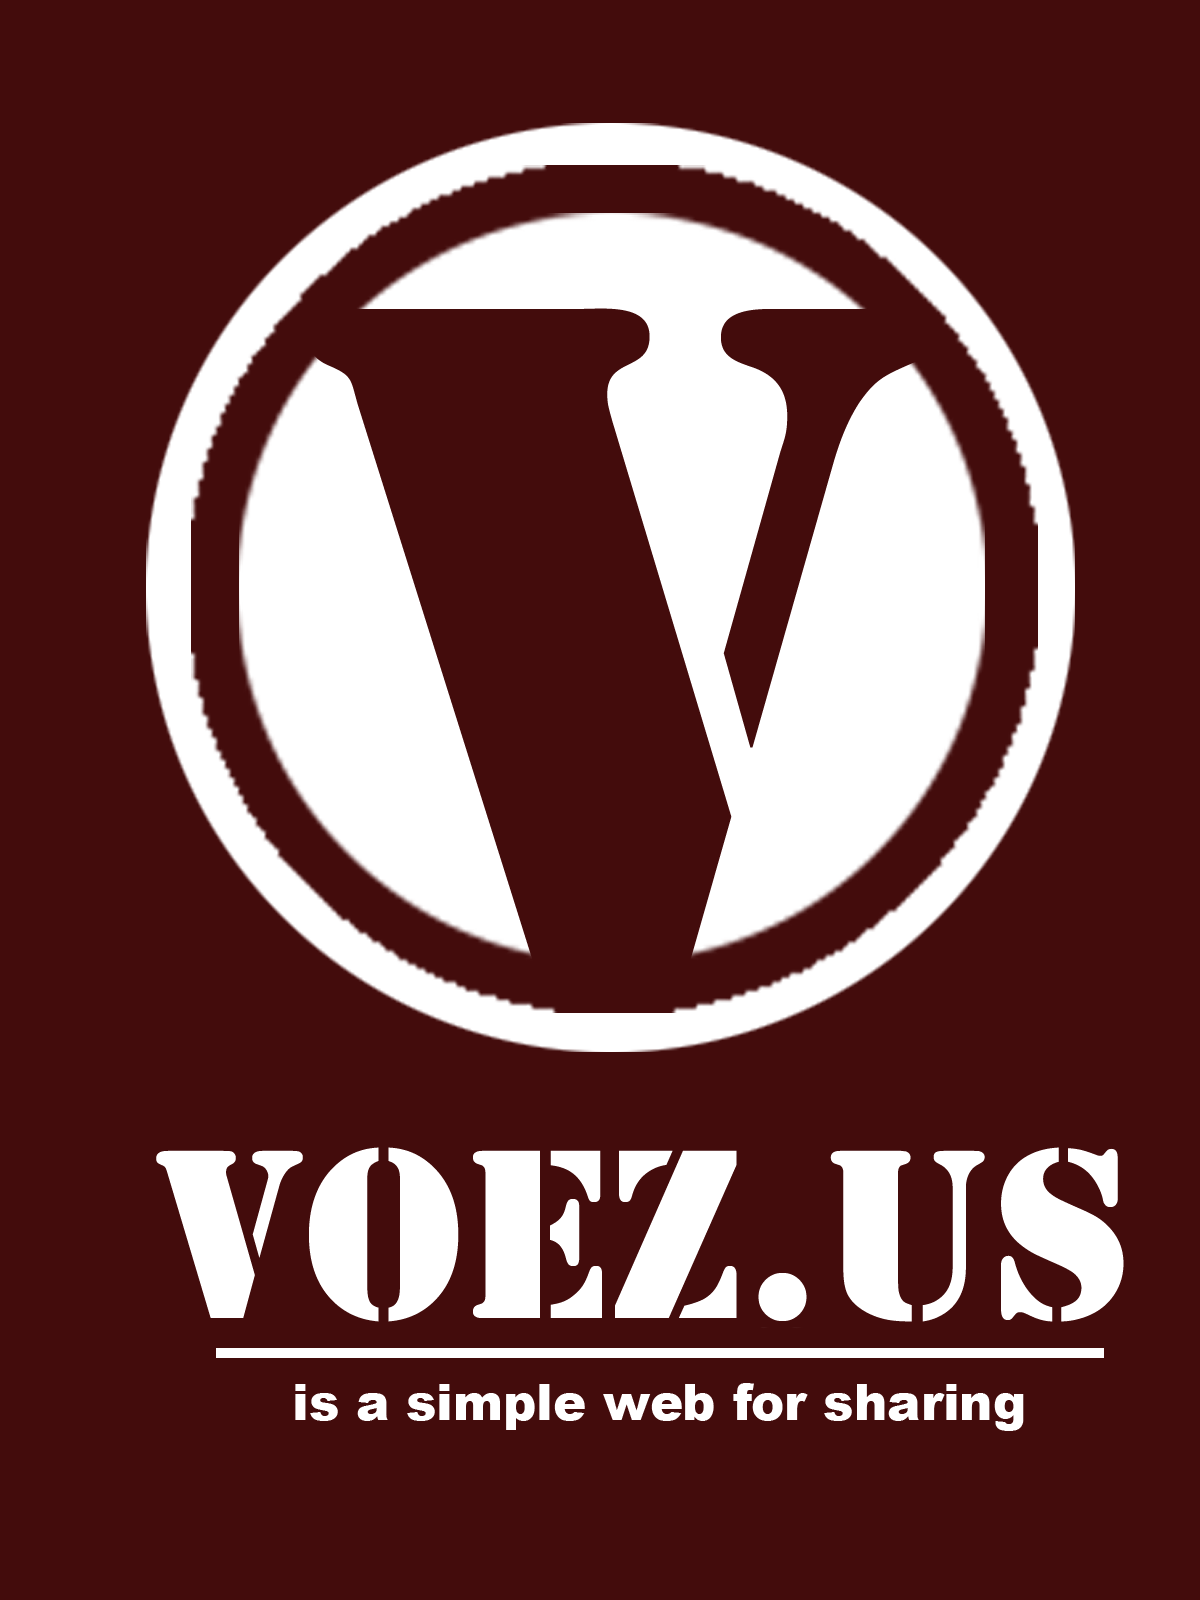 voez.us : is a simple web for sharing